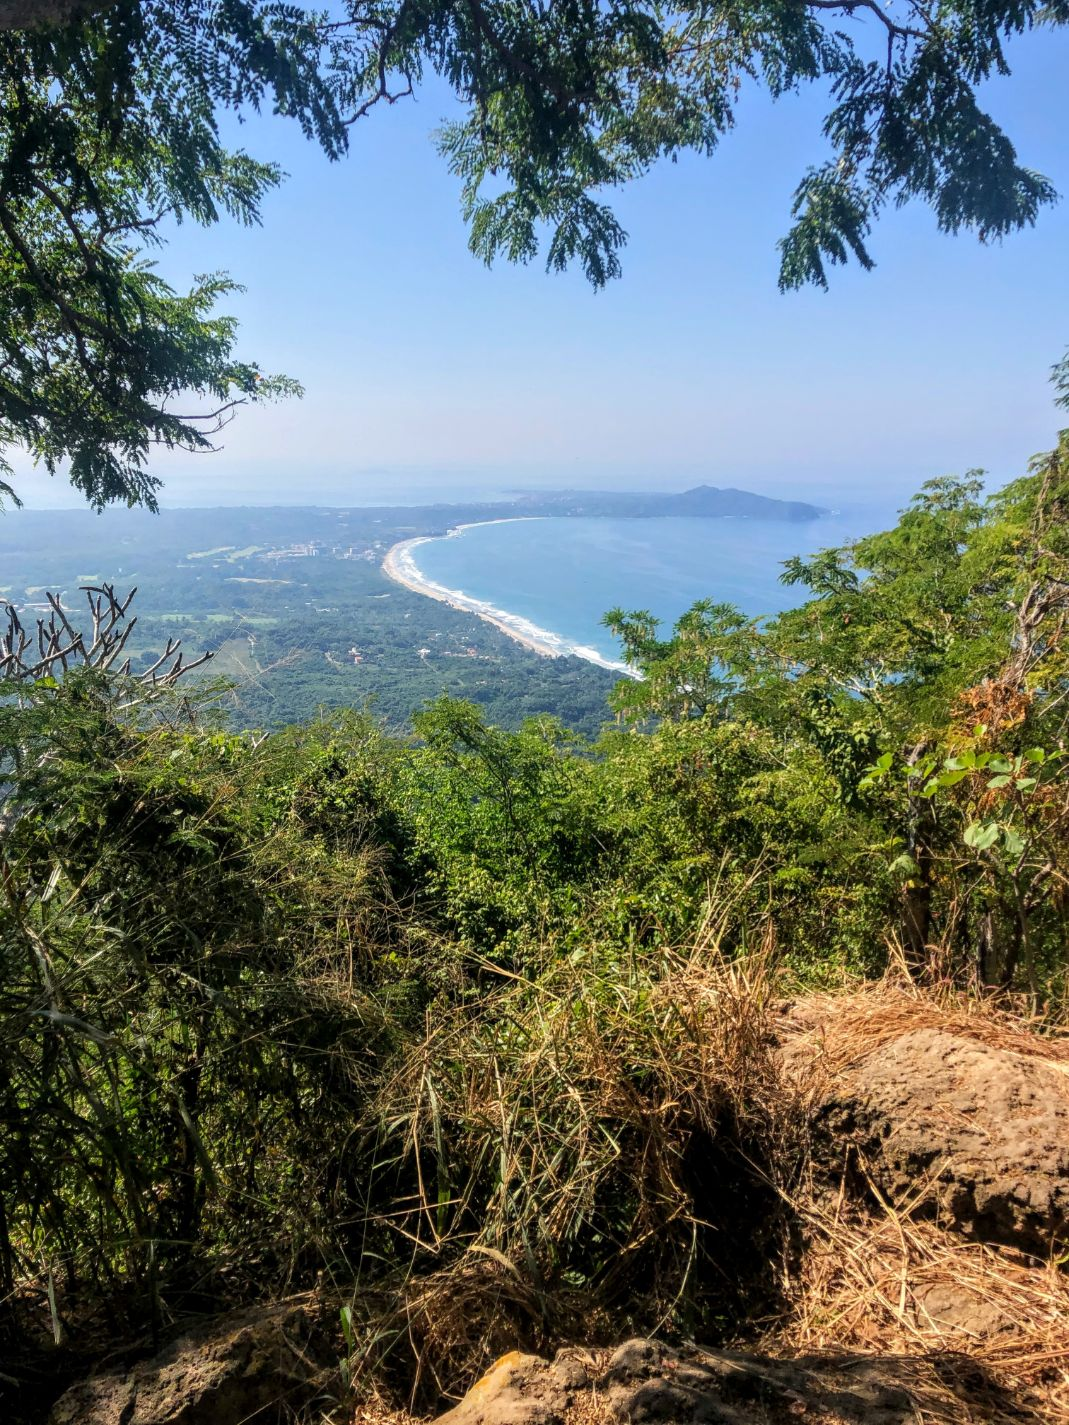 View of the Puerto Vallarta coastline from the top of Monkey Mountain